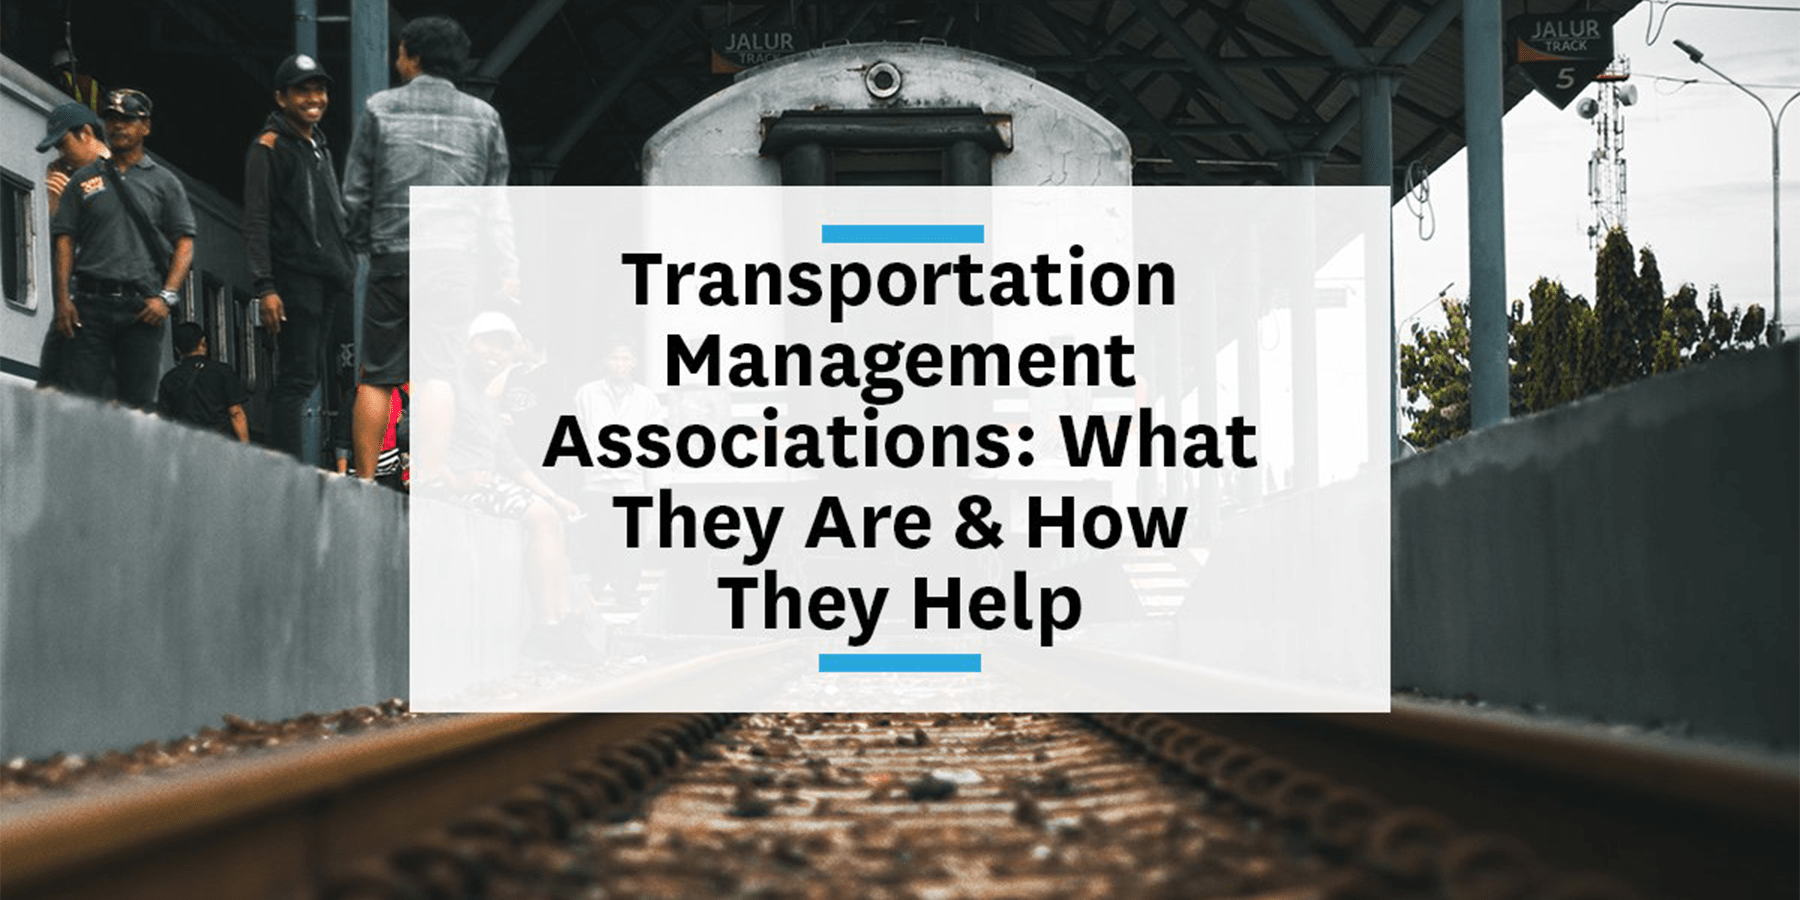 Feature image for the breakdown of transportation management associations